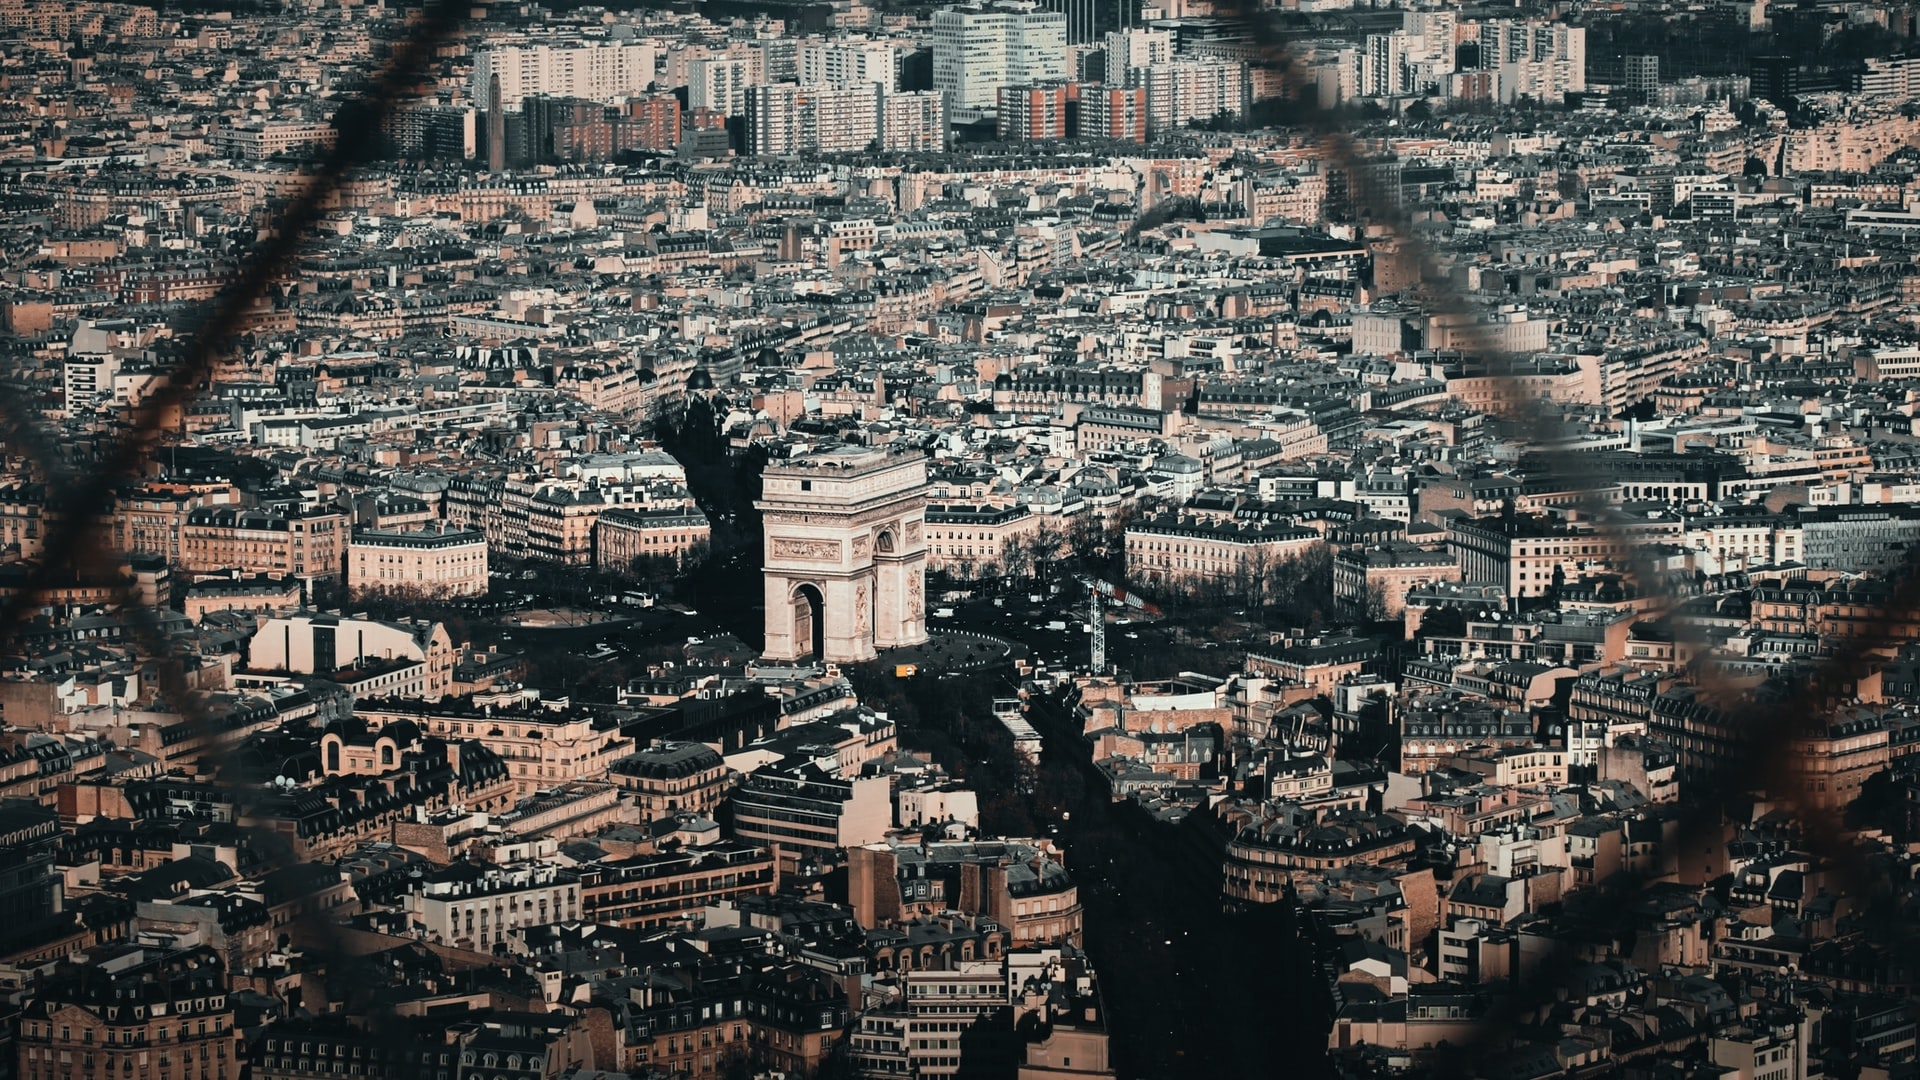 The Arc de Triomphe seen from the Eiffel Tower